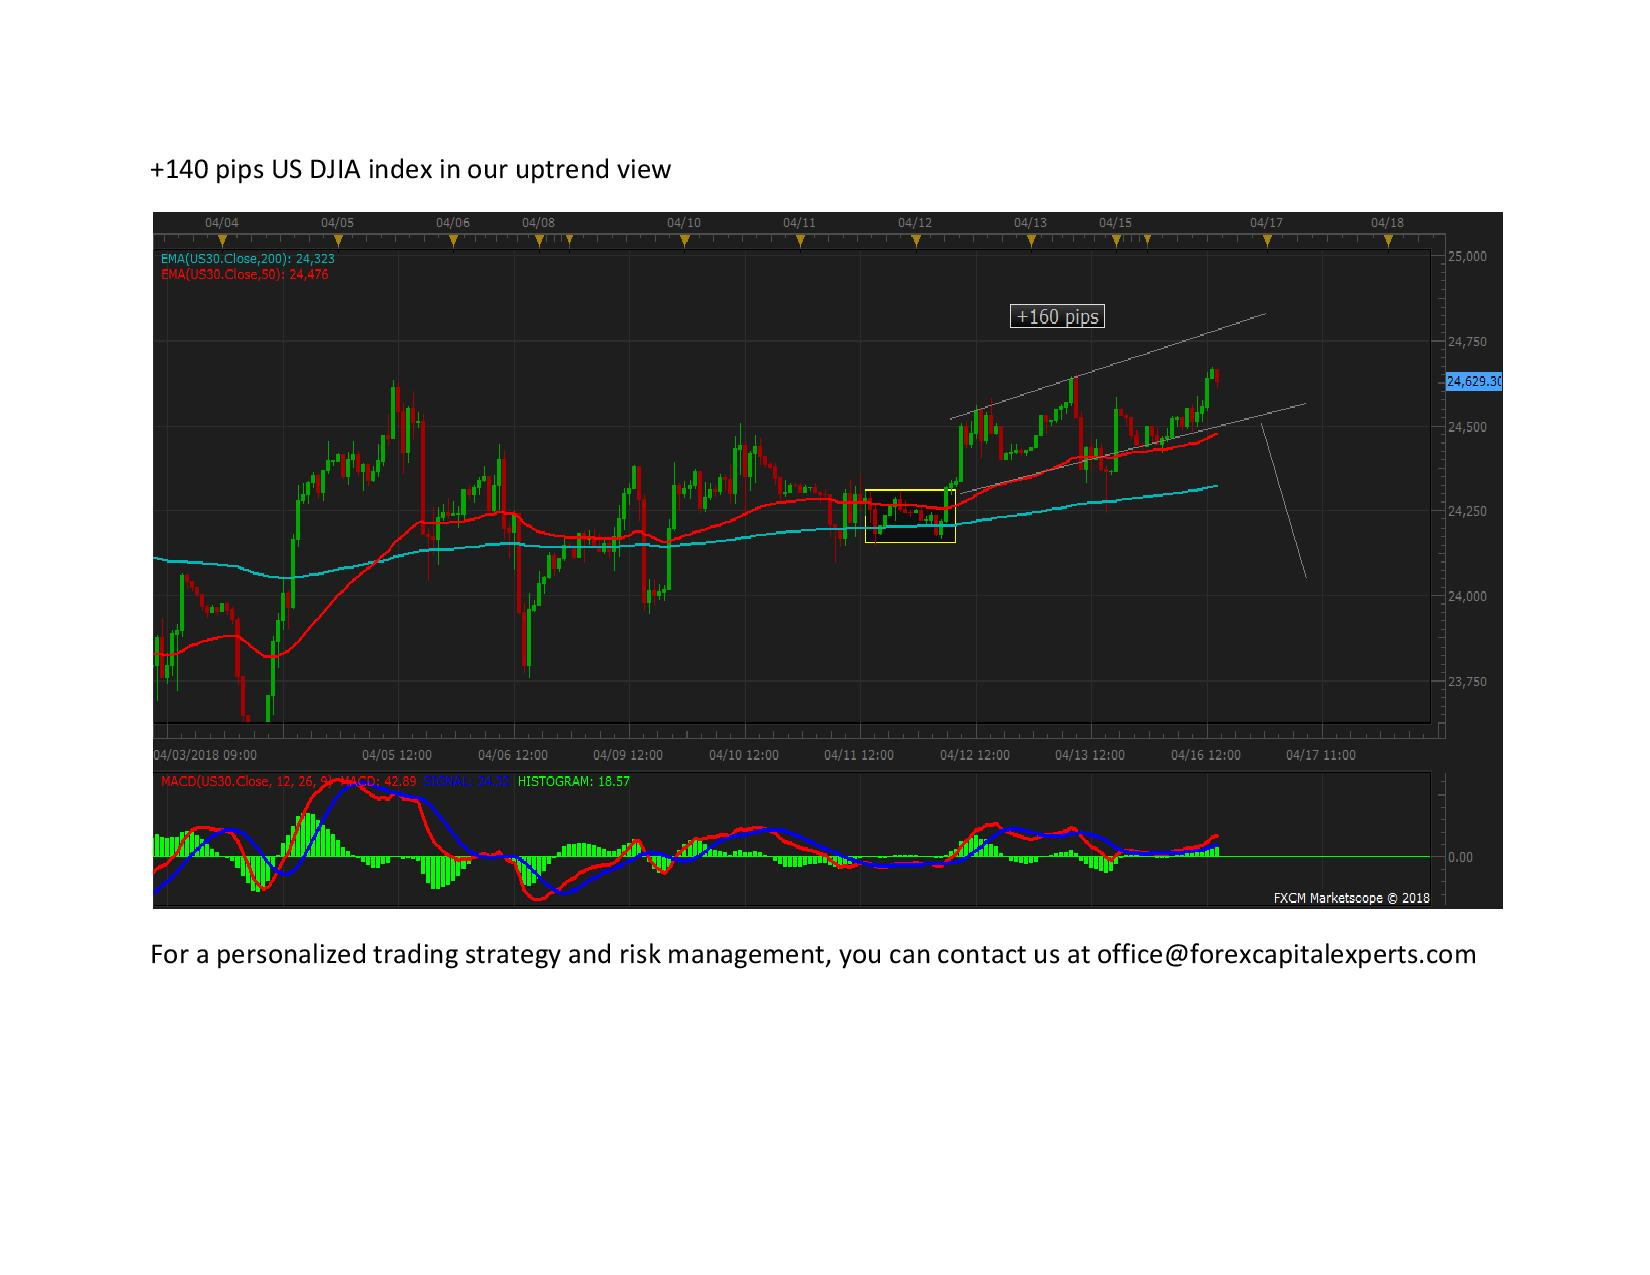 140 pips US DJIA index in our uptrend view page 001